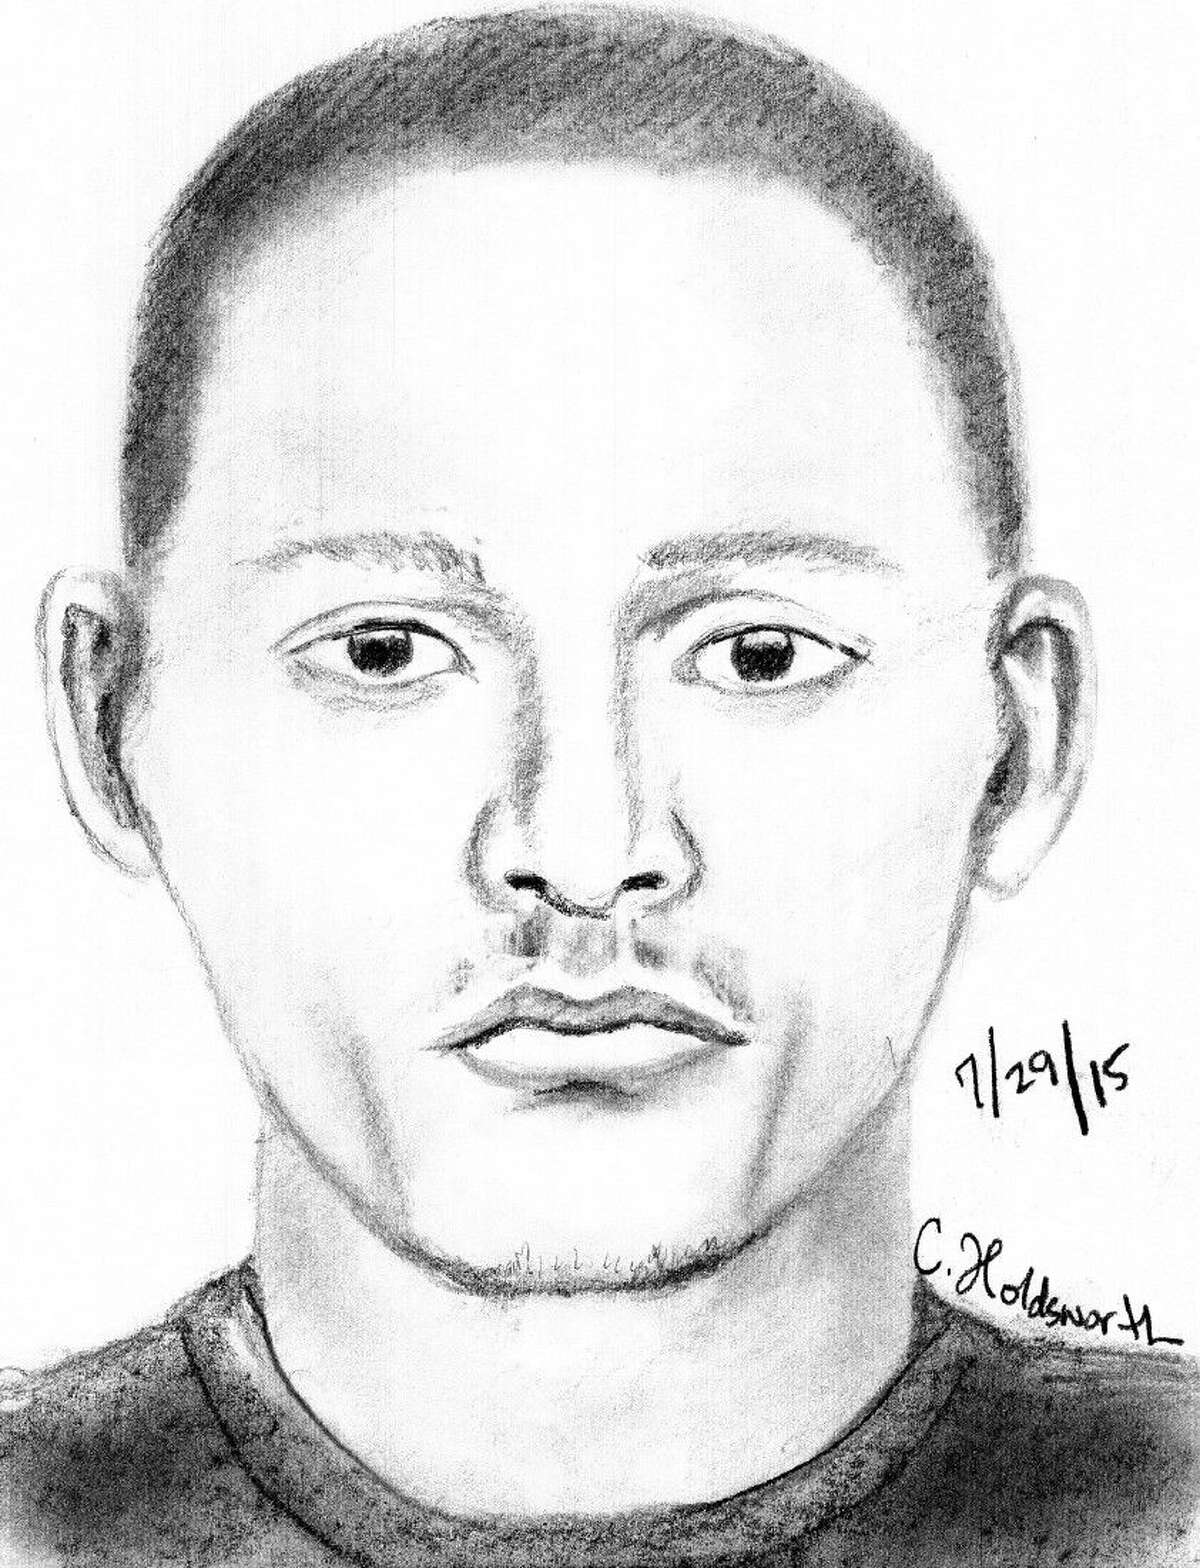 Sketch of one of the three Home break-in suspects